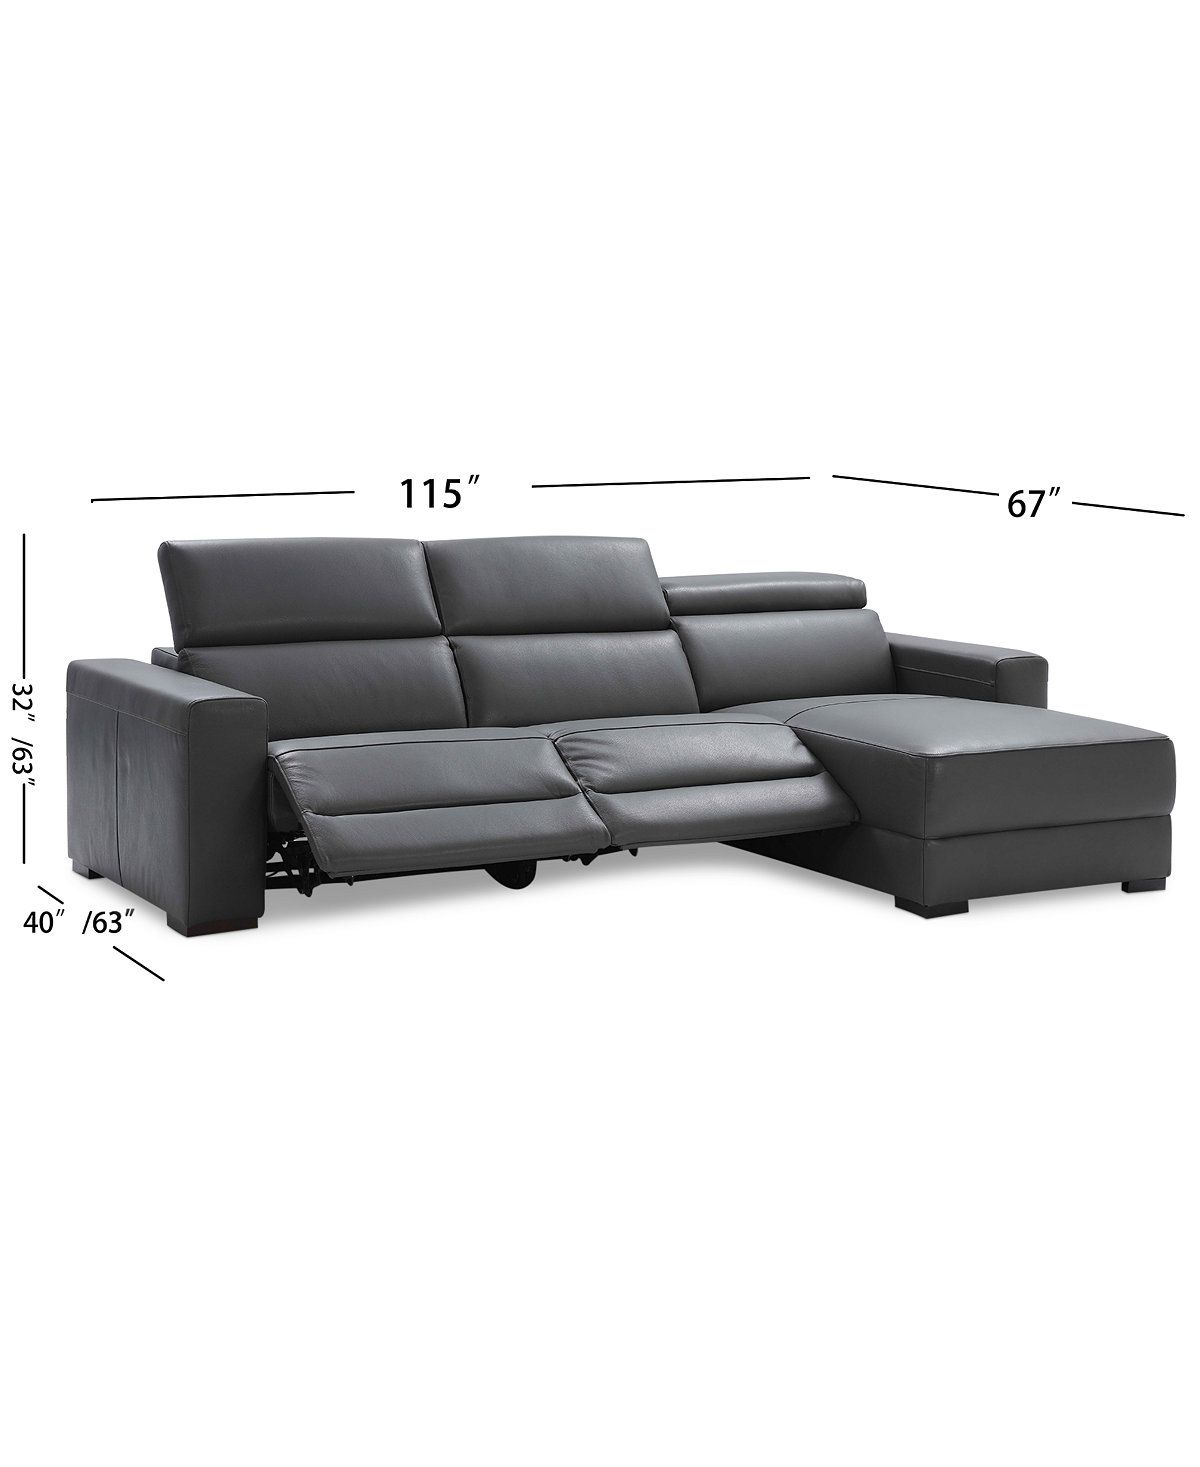 Nevio 3 Pc Leather Sectional Sofa With Chaise 2 Power Recliners And Articulating Headre Sectional Sofa With Chaise Modern Recliner Sofa Leather Sectional Sofa